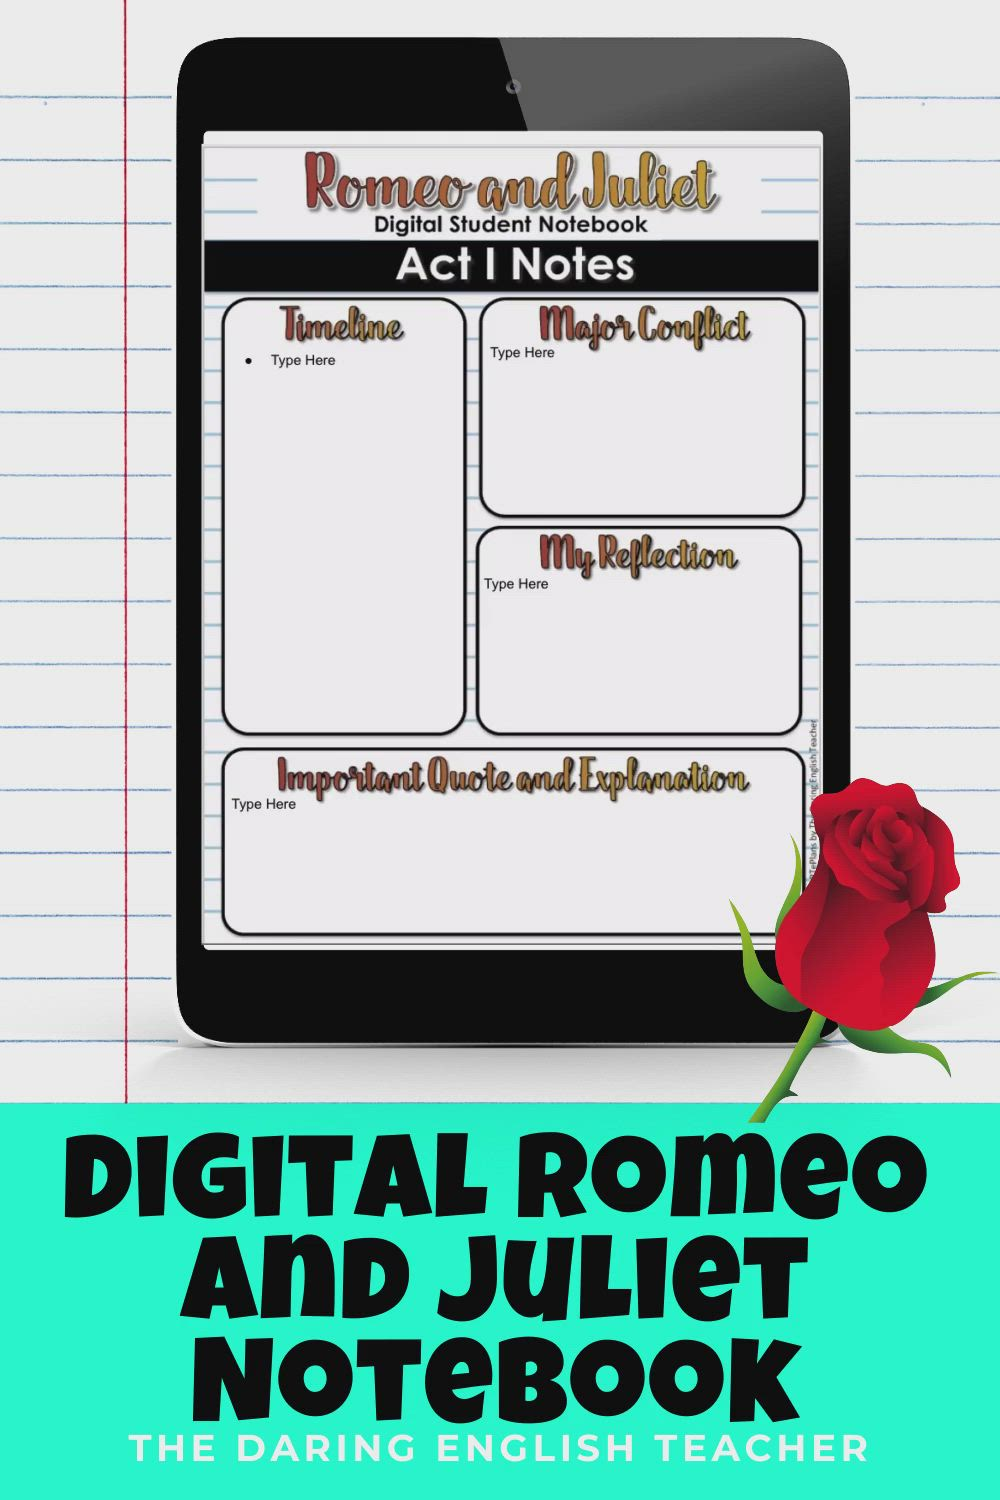 Digital Romeo And Juliet Interactive Notebook For Remote Learning Video Teaching Shakespeare Student Act 2 Scene 1 Quote Analysis Analysi